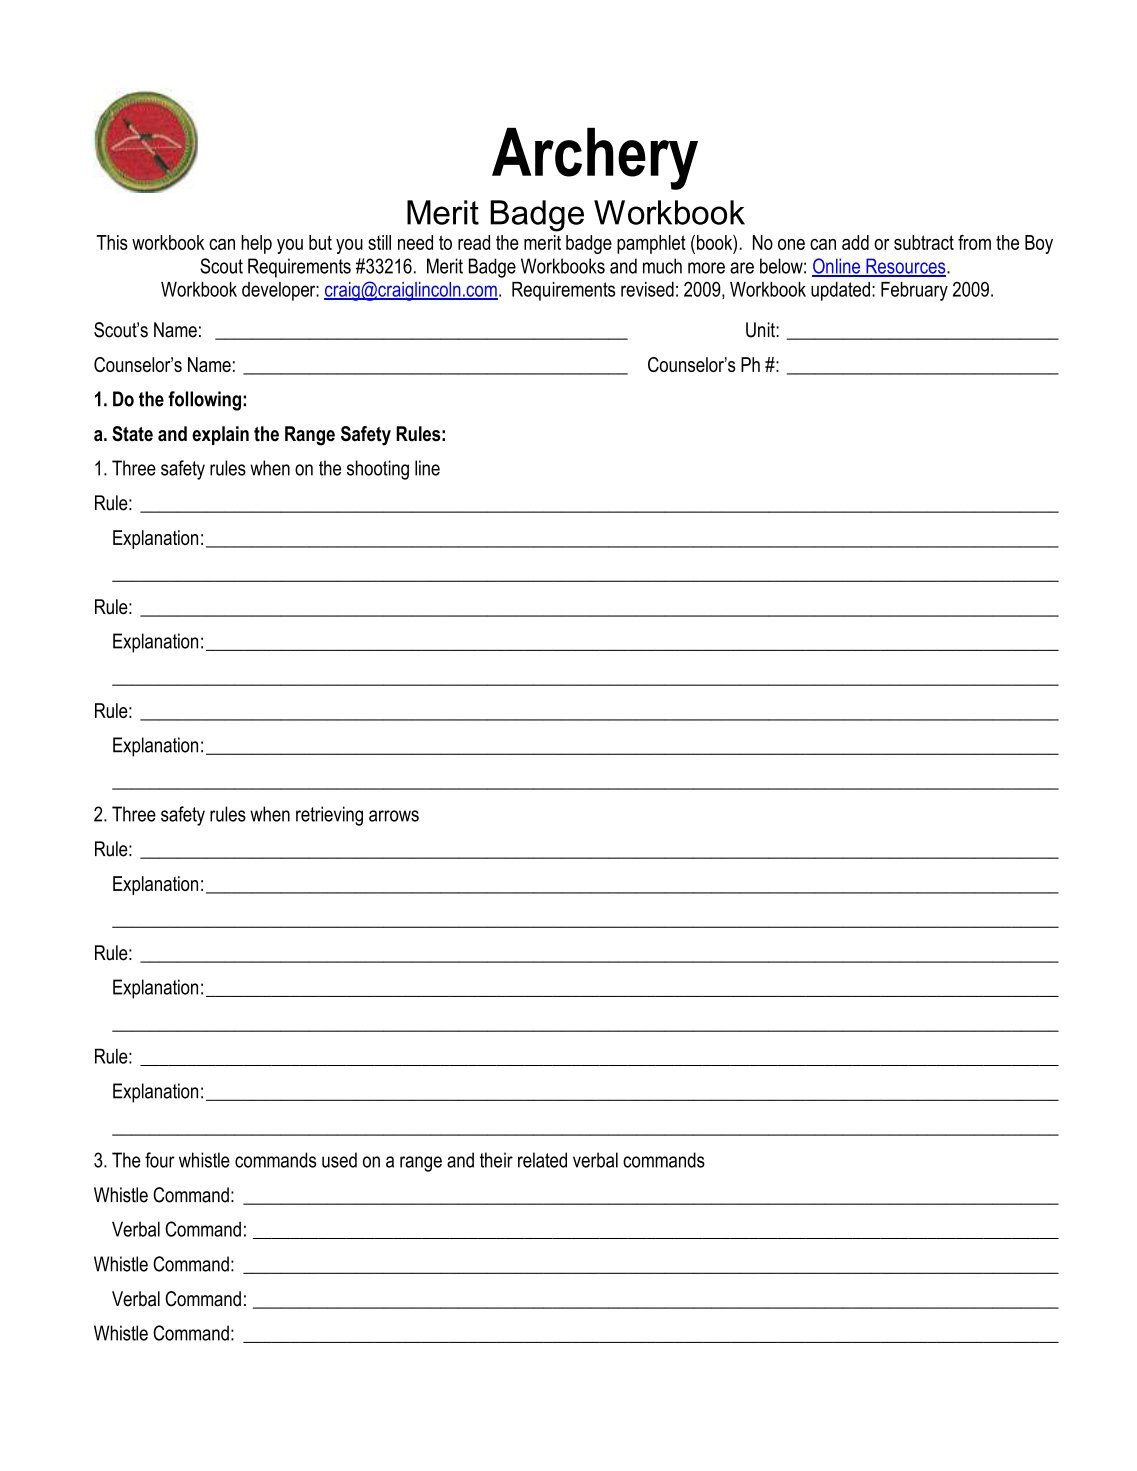 worksheet Bsa Environmental Science Merit Badge Worksheet environmental science merit badge worksheet free worksheets library pr t bles pers l m n gement b dge w ksheet kigose